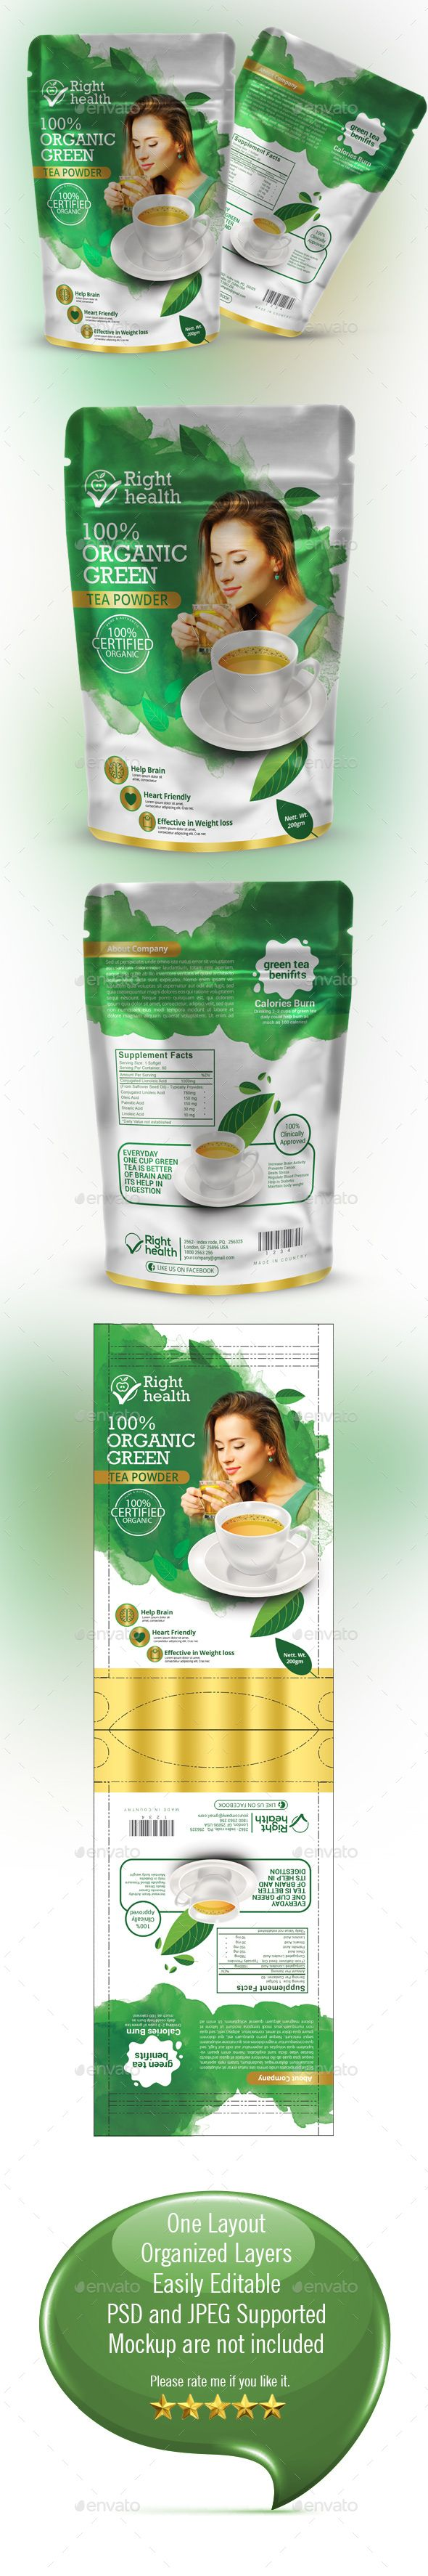 Tea Packaging Design Template - Packaging Design Print Template PSD. Download here: https://graphicriver.net/item/tea-packaging-template/19445040?ref=yinkira